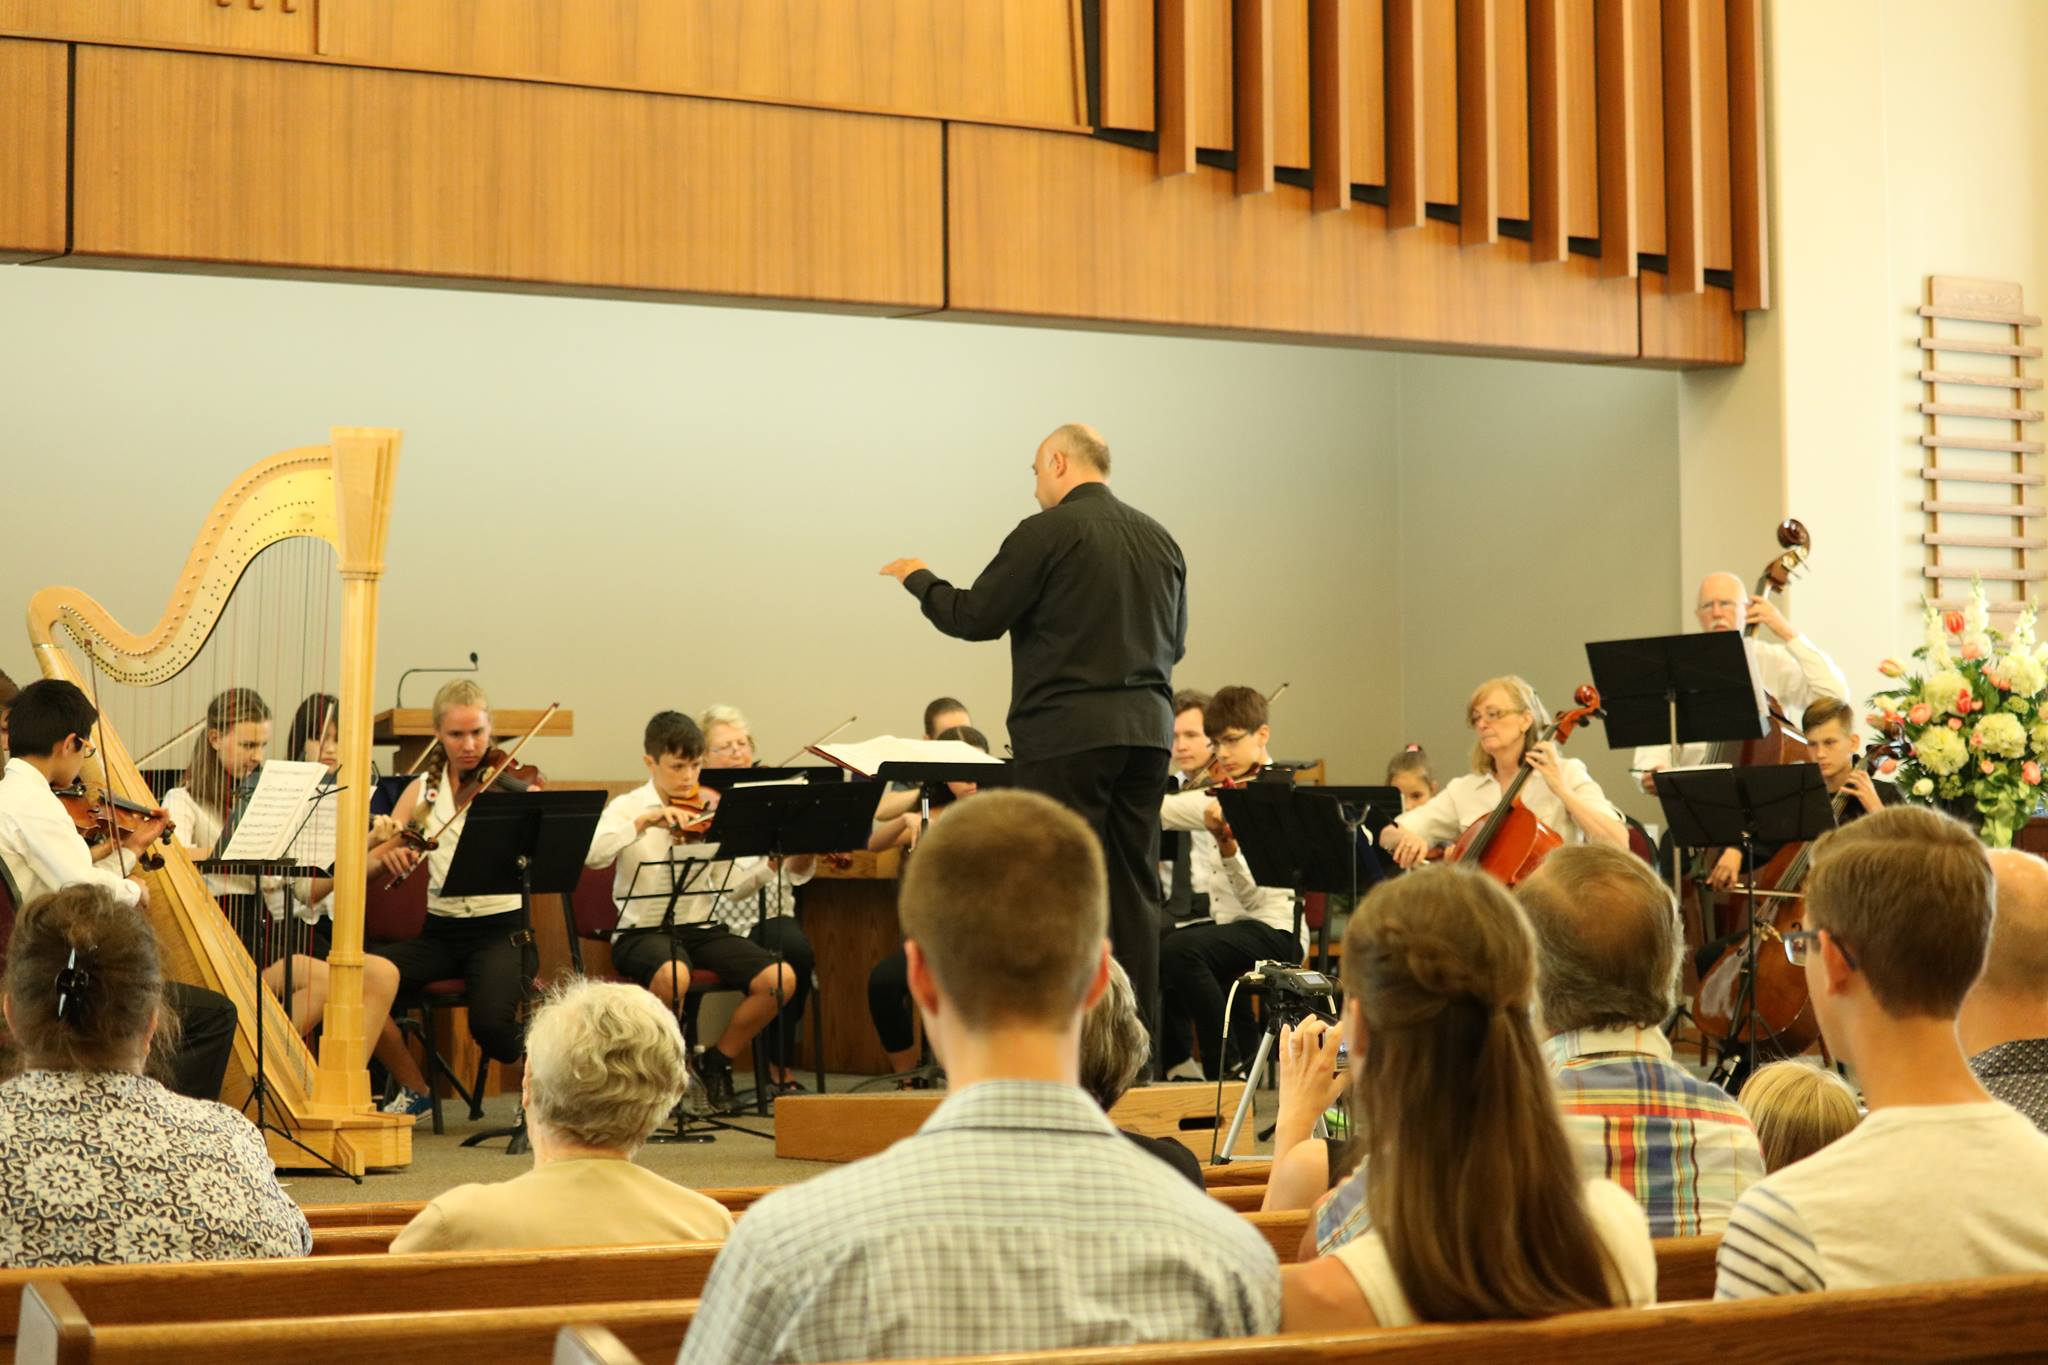 Orchestra pic 2